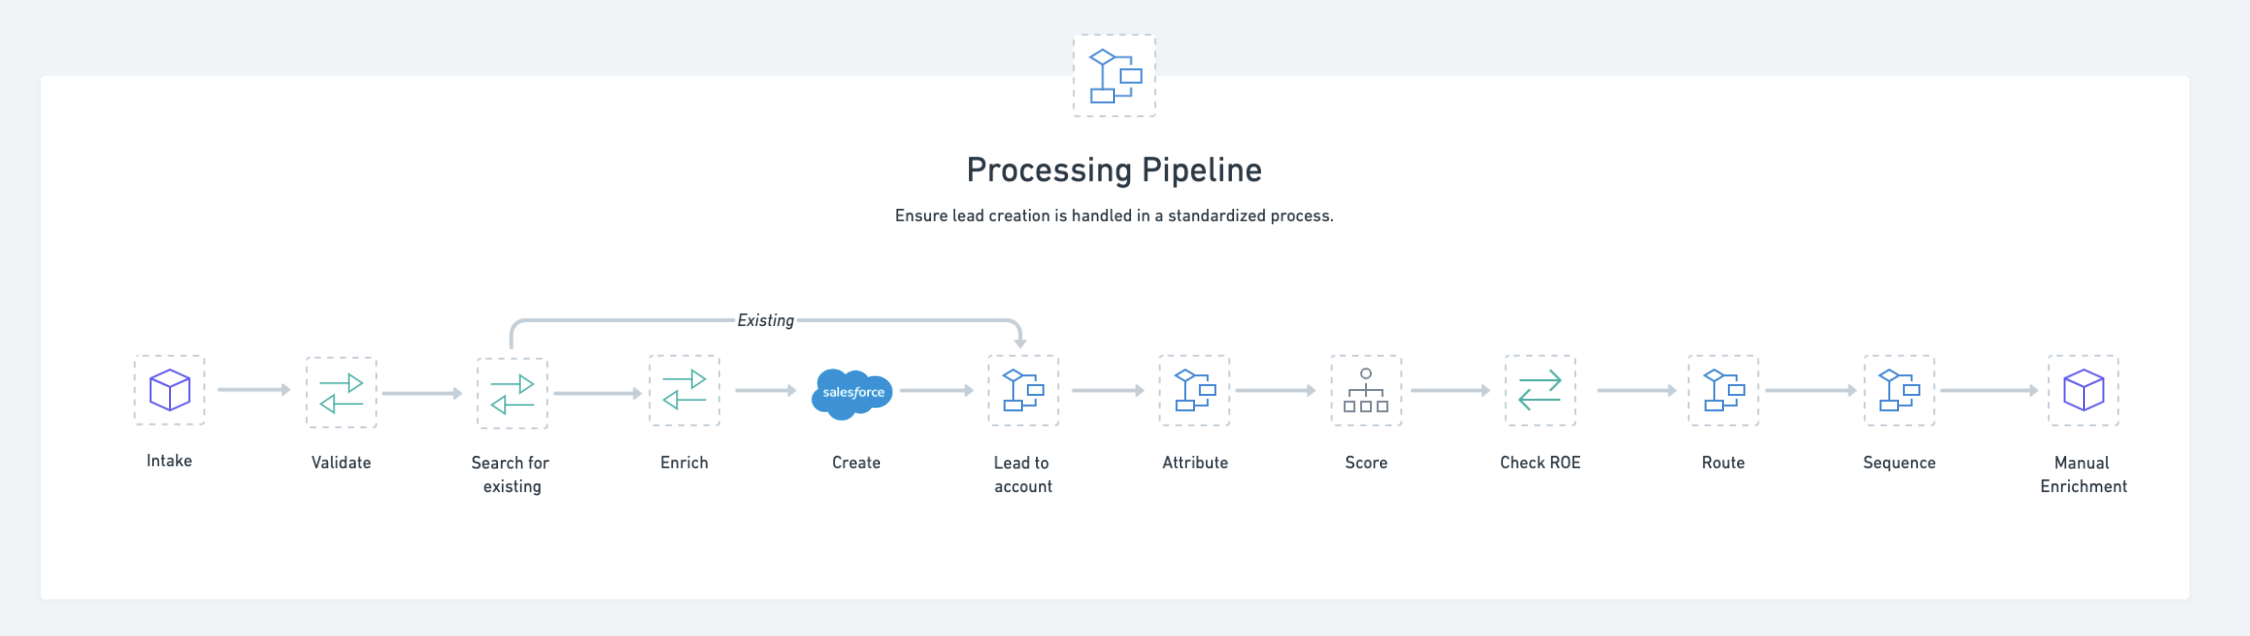 Lead Processing Pipeline Schematic